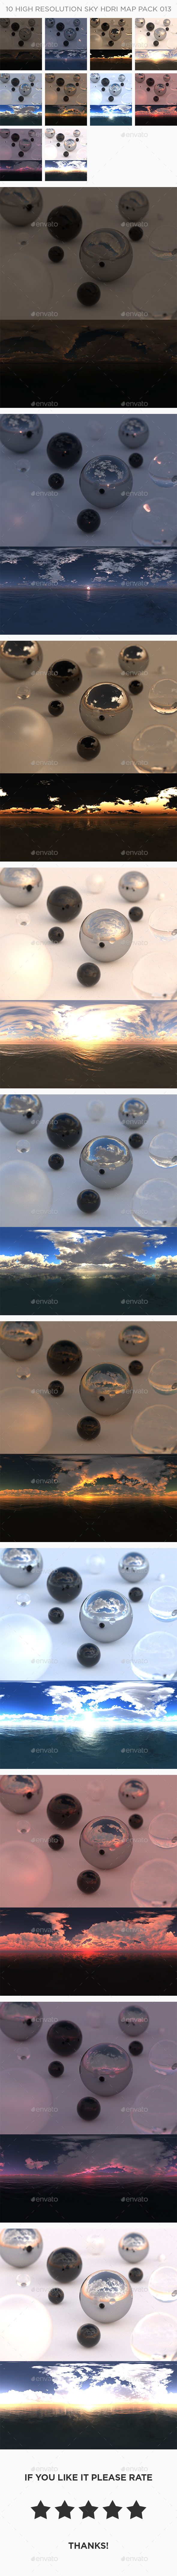 3DOcean 10 High Resolution Sky HDRi Maps Pack 013 21104166